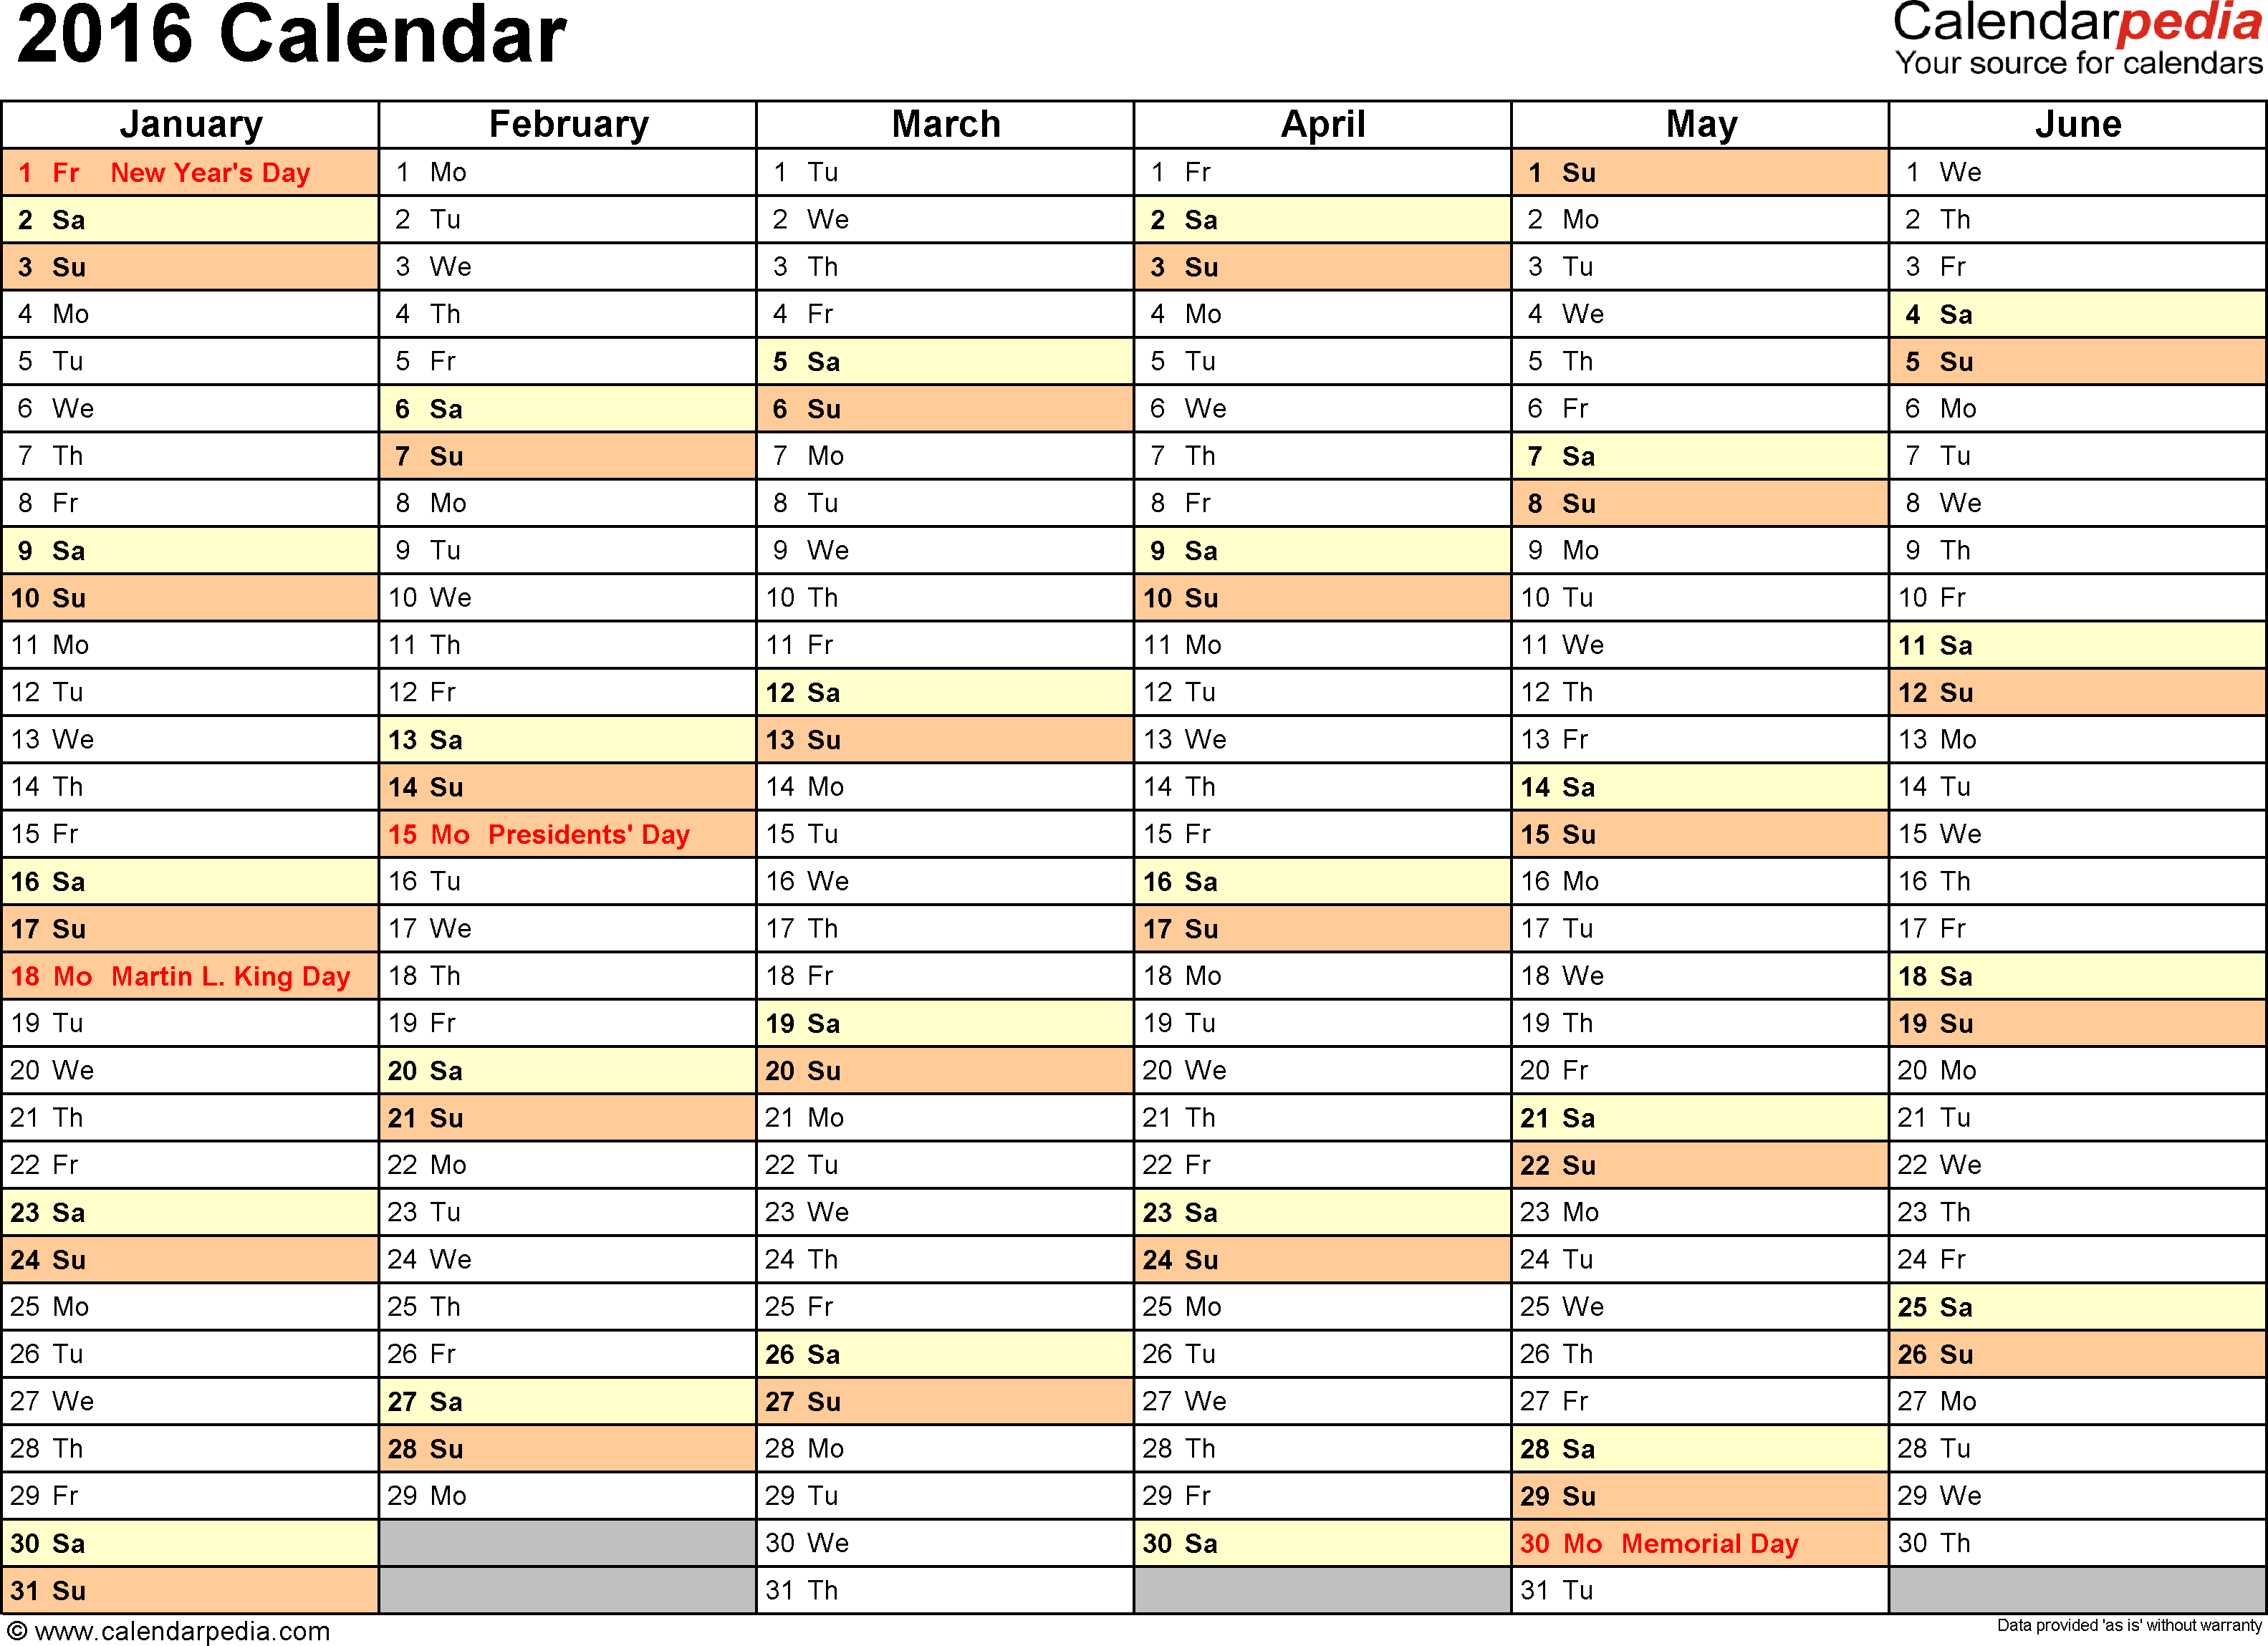 Ediblewildsus  Marvelous  Calendar  Download  Free Printable Excel Templates Xls With Fascinating Template   Calendar For Excel Months Horizontally  Pages Landscape Orientation With Cute Group Columns Excel Also Using Sum In Excel In Addition How To Show Formulas In Excel  And Excel How To Create A Pivot Table As Well As Excel  Dashboard Additionally Candlestick Chart Excel From Calendarpediacom With Ediblewildsus  Fascinating  Calendar  Download  Free Printable Excel Templates Xls With Cute Template   Calendar For Excel Months Horizontally  Pages Landscape Orientation And Marvelous Group Columns Excel Also Using Sum In Excel In Addition How To Show Formulas In Excel  From Calendarpediacom